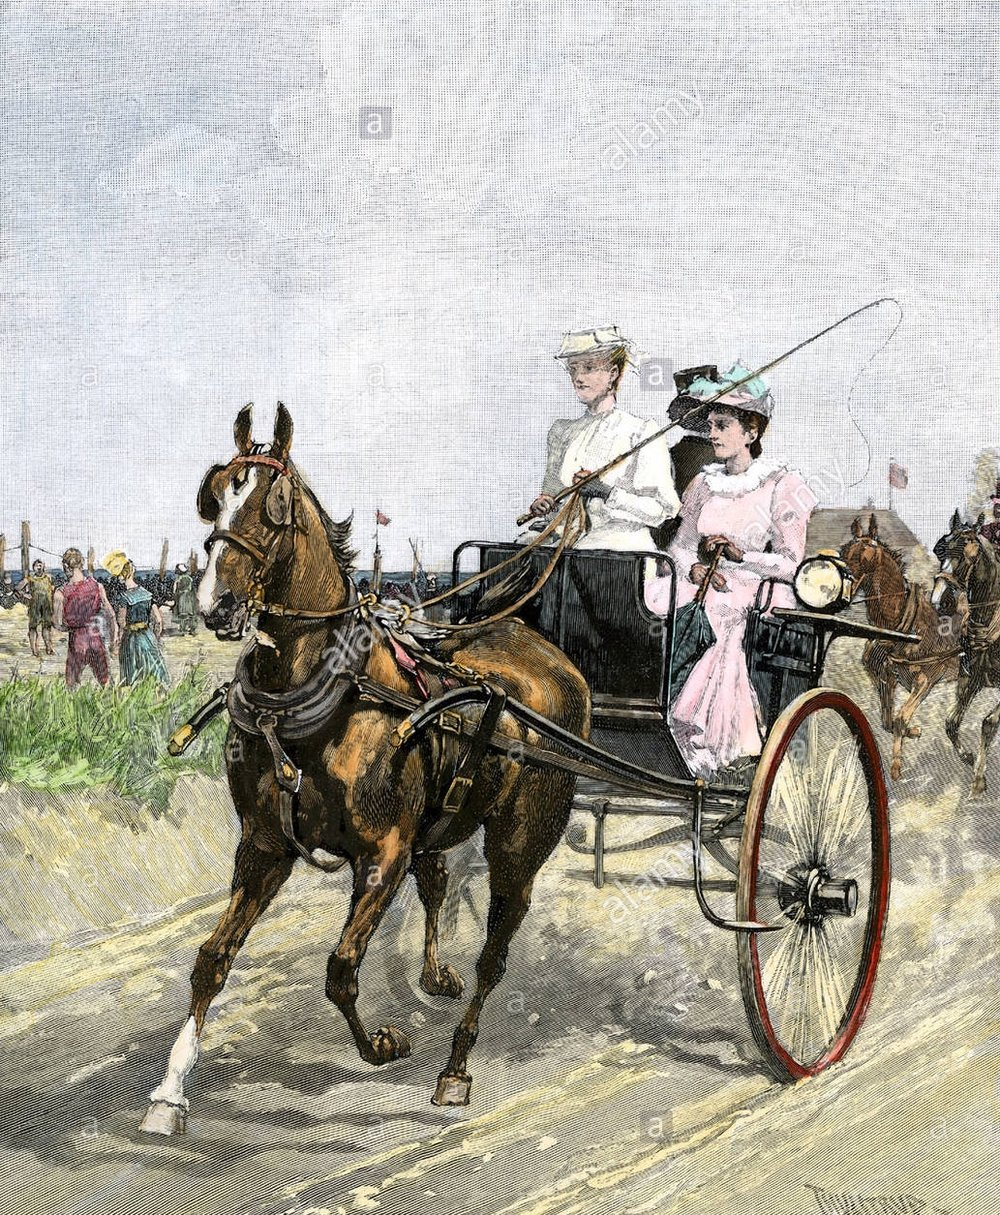 fashionable-young-women-driving-a-horse-and-carriage-on-the-beach-AE1WP5.jpg